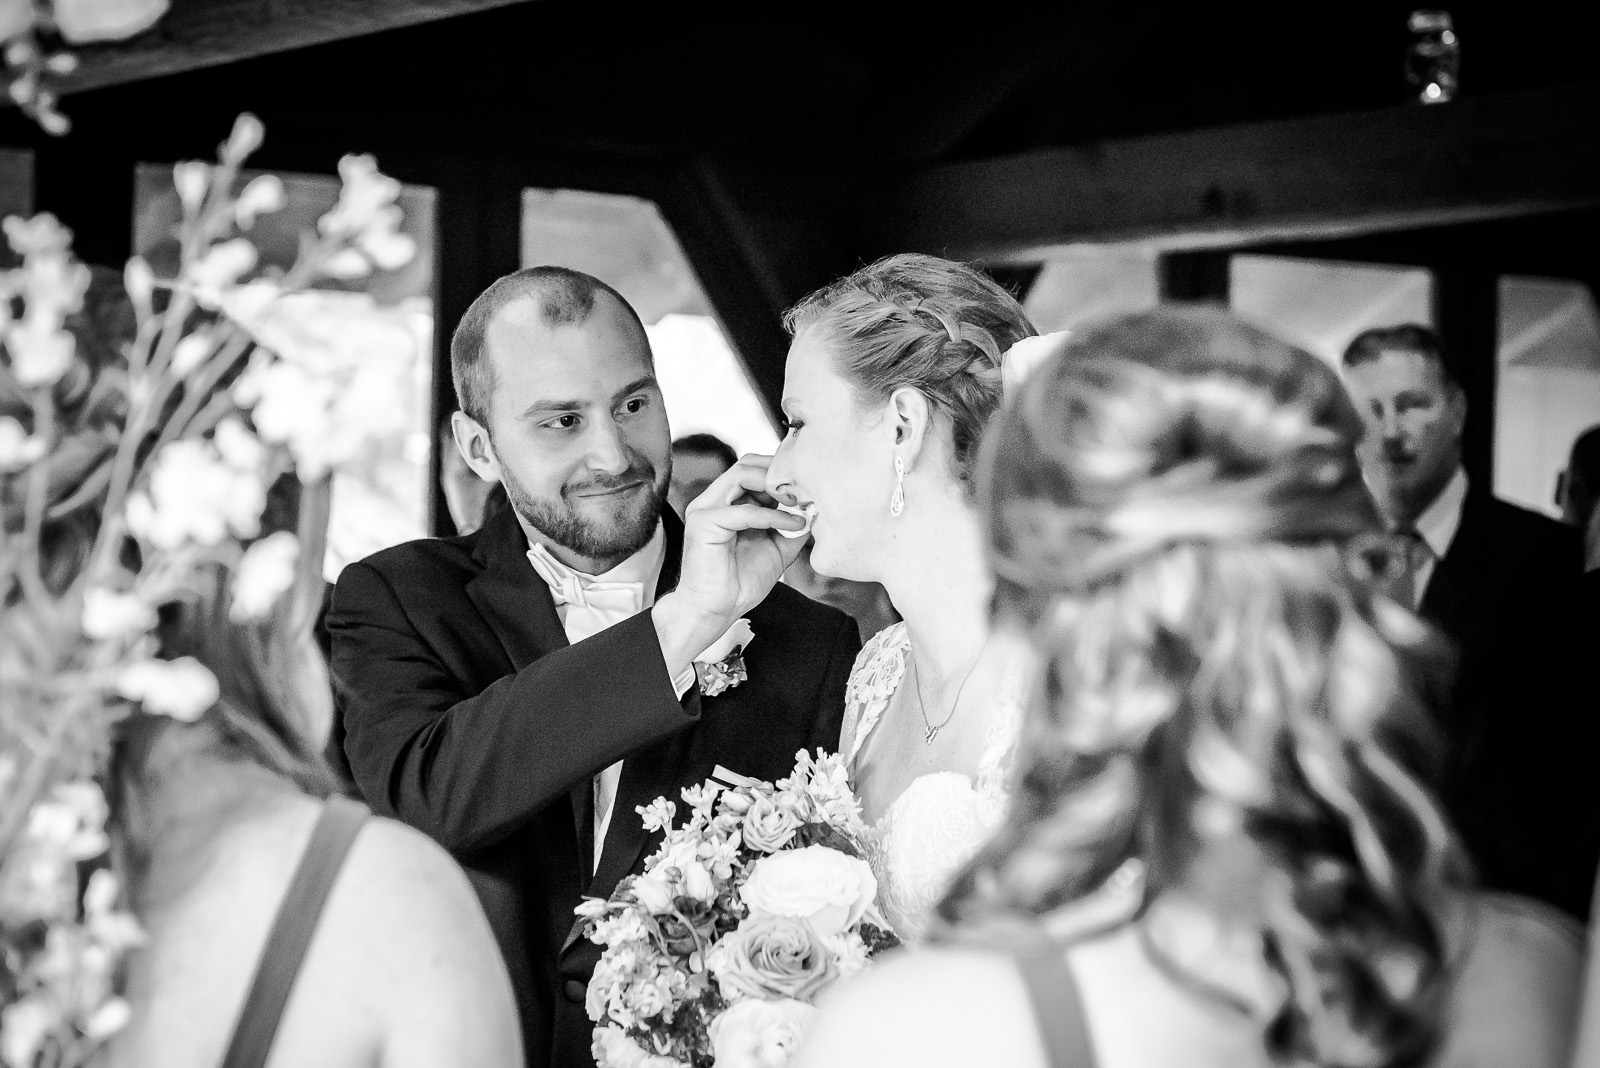 Eric_and_Christy_Photography_Blog_2016_Best_Wedding_Moments-4